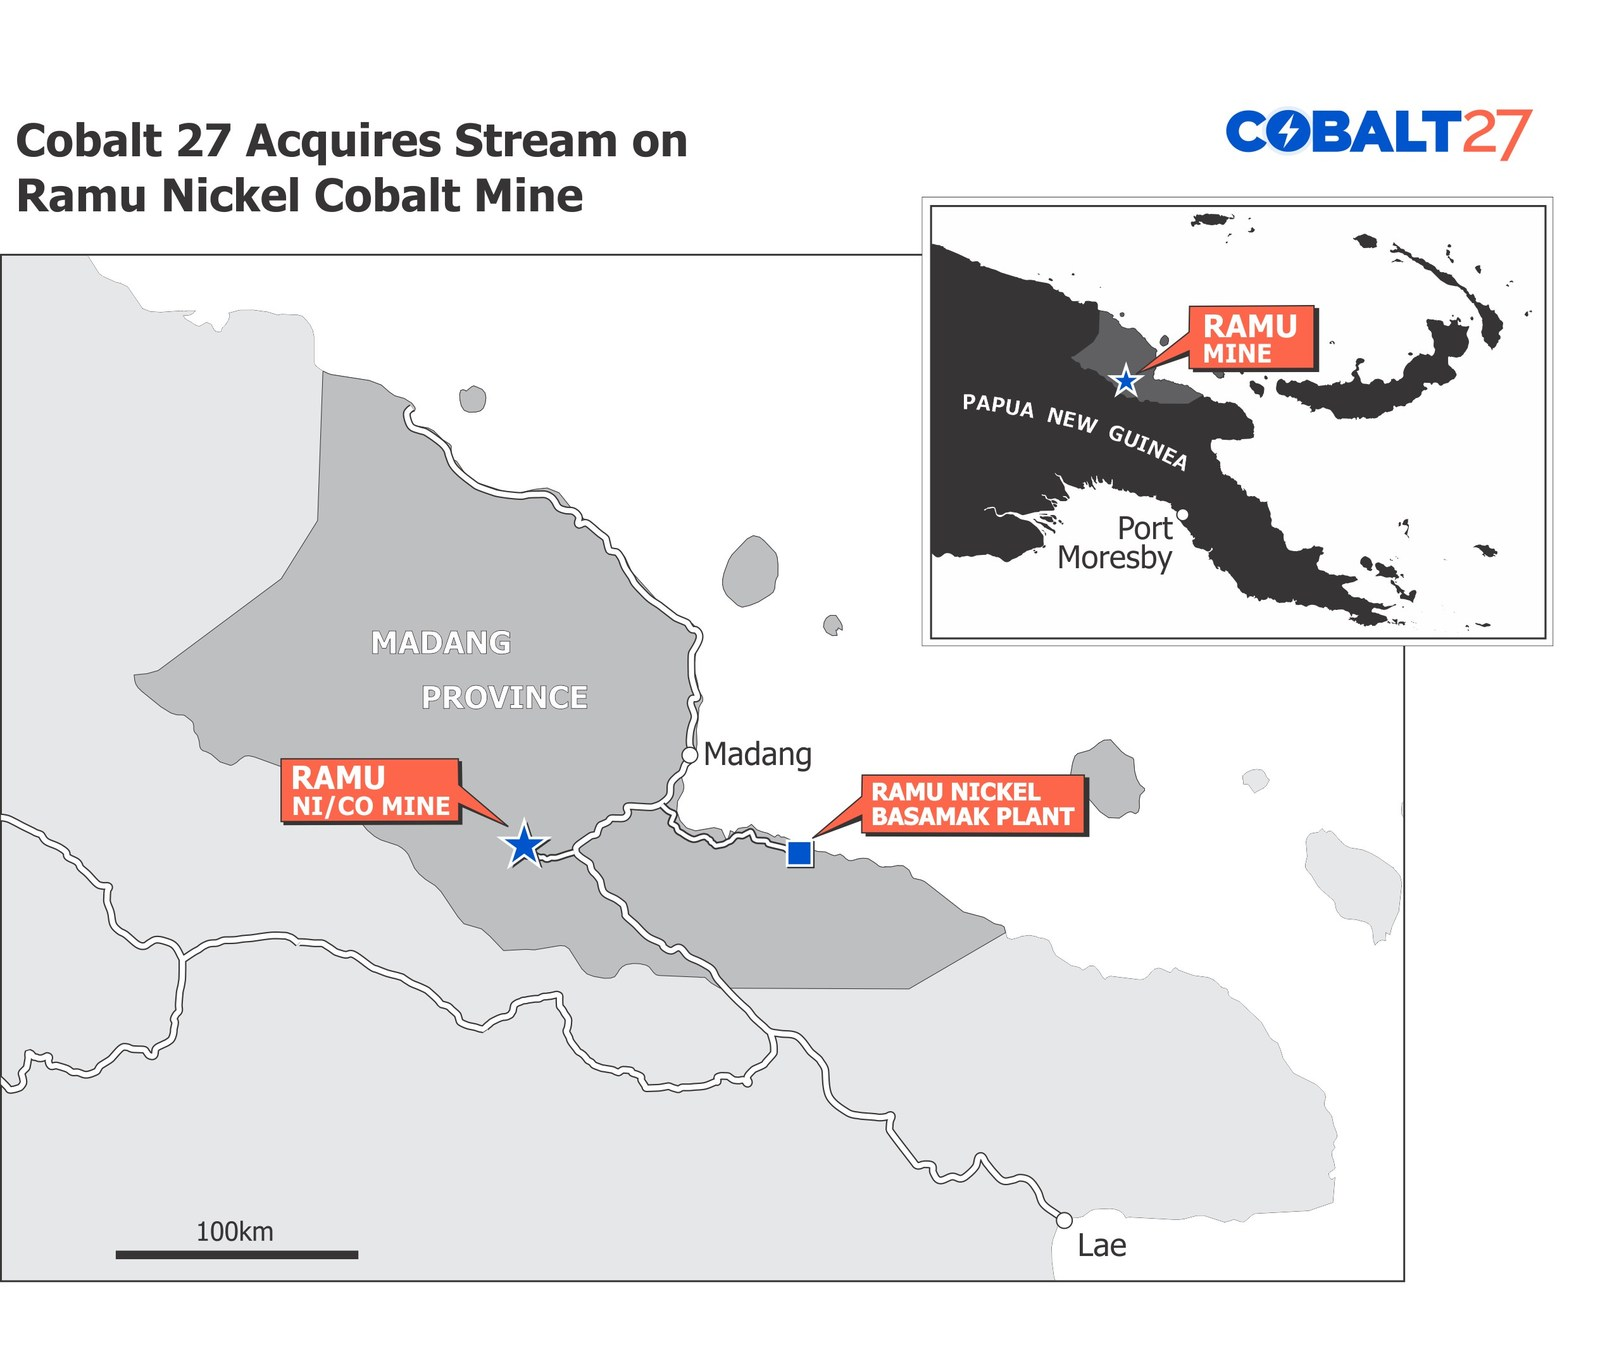 Cobalt 27 Acquires a Cash Flowing Cobalt-Nickel Stream on Producing Ramu Nickel-Cobalt Mine for US$113 Million. This regional map shows the location of the Ramu mine.